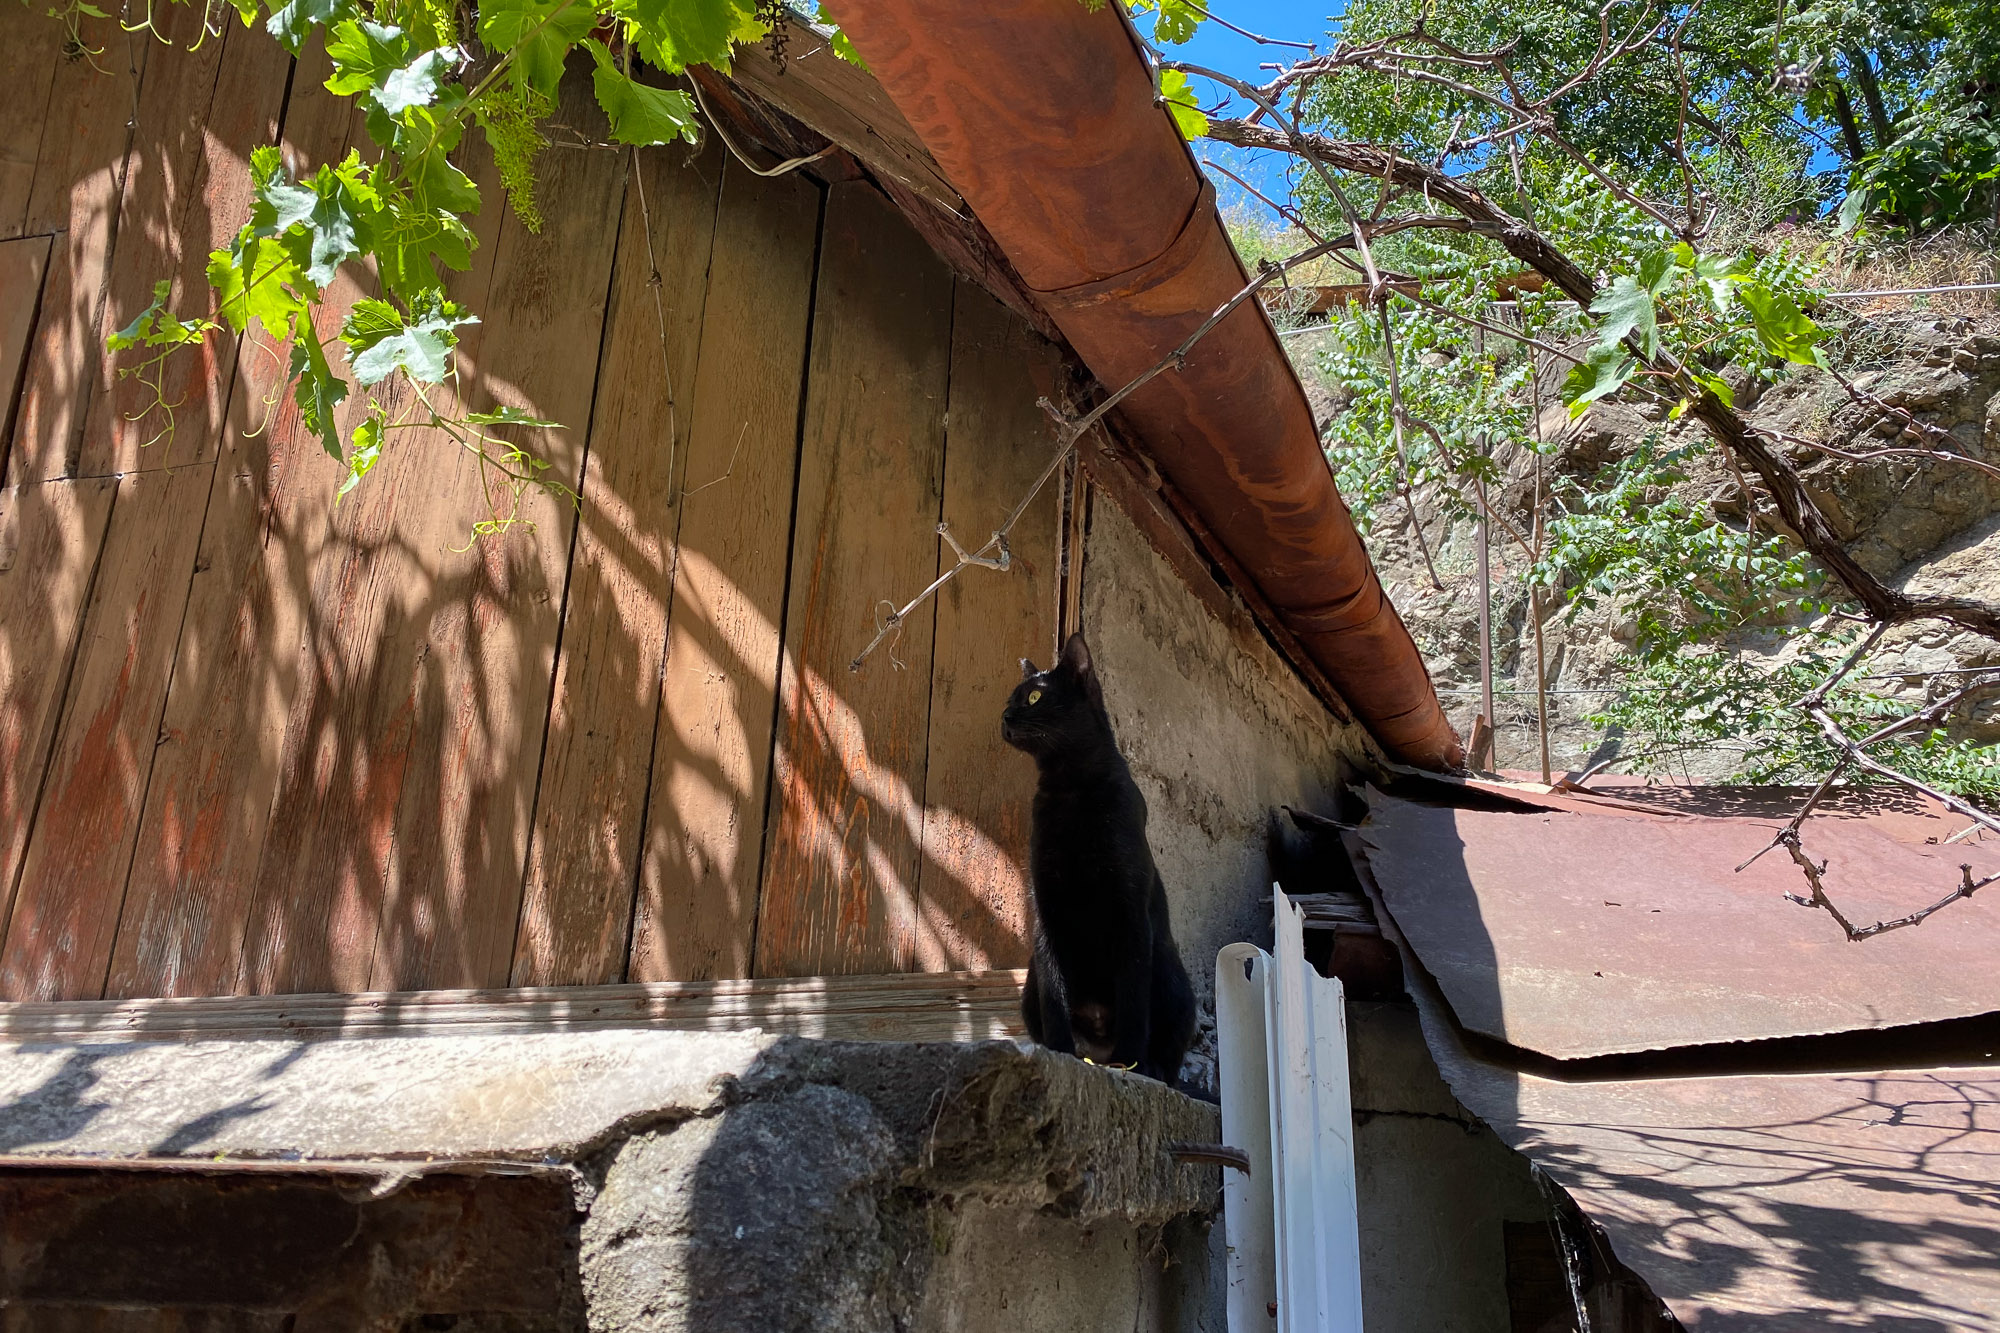 cats on a roof